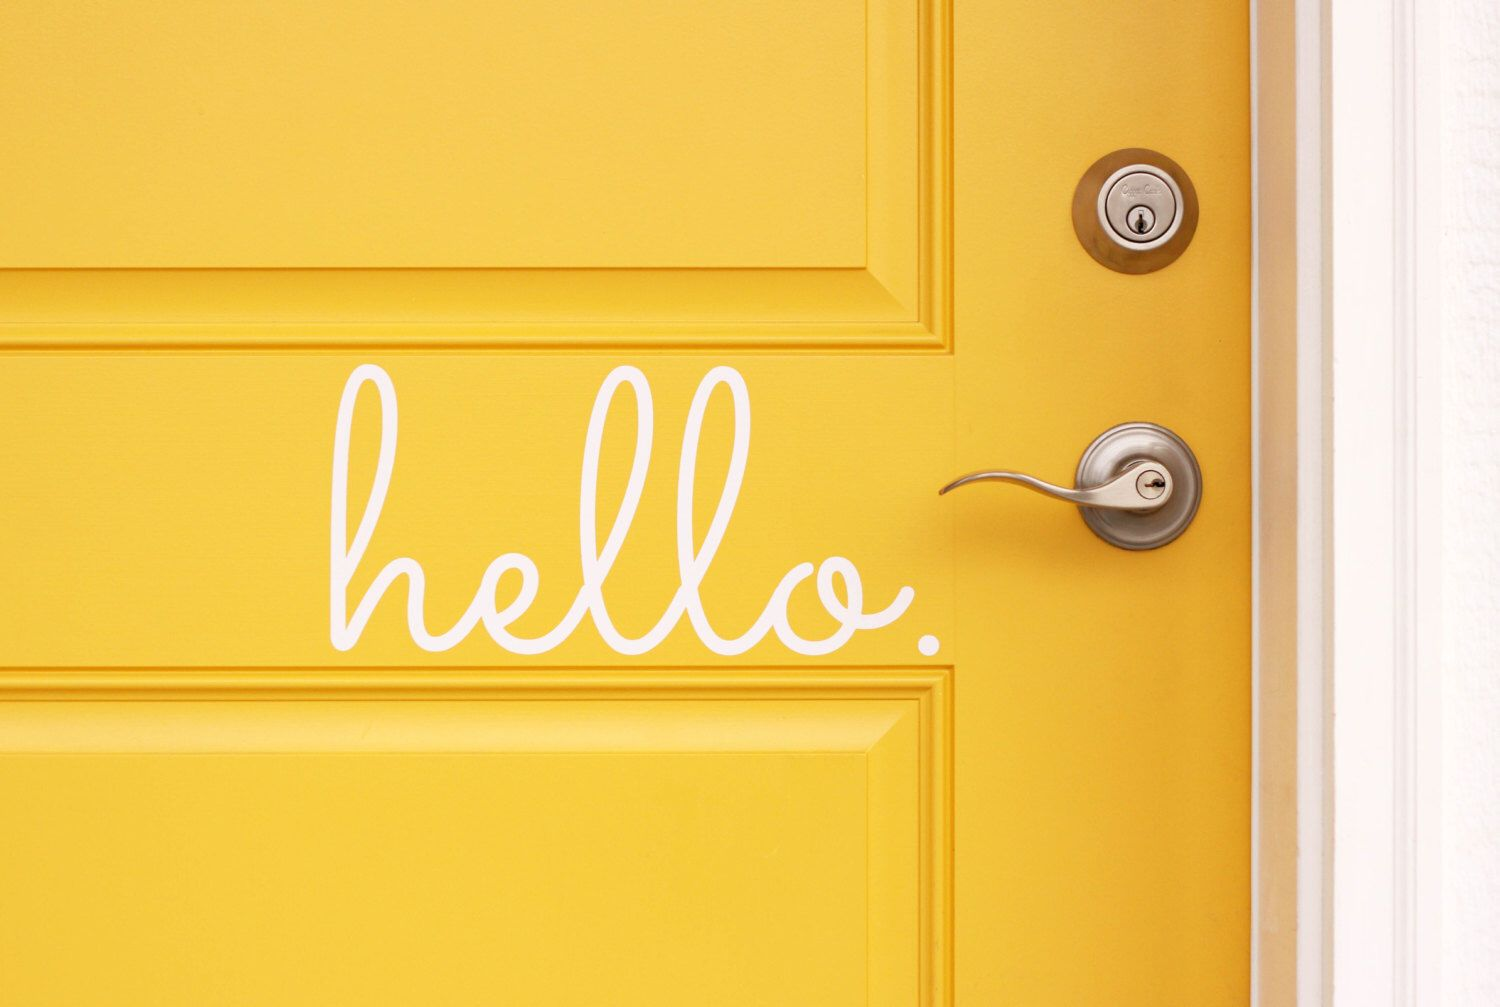 Hello Vinyl Door Decal - Hello Front Door Decals, Hello Home Office Decor, Custom Vinyl Decals, Hello Vinyl Hello Decal, Vinyl Company 11x5 by TheVinylCompany on Etsy https://www.etsy.com/listing/127268055/hello-vinyl-door-decal-hello-front-door